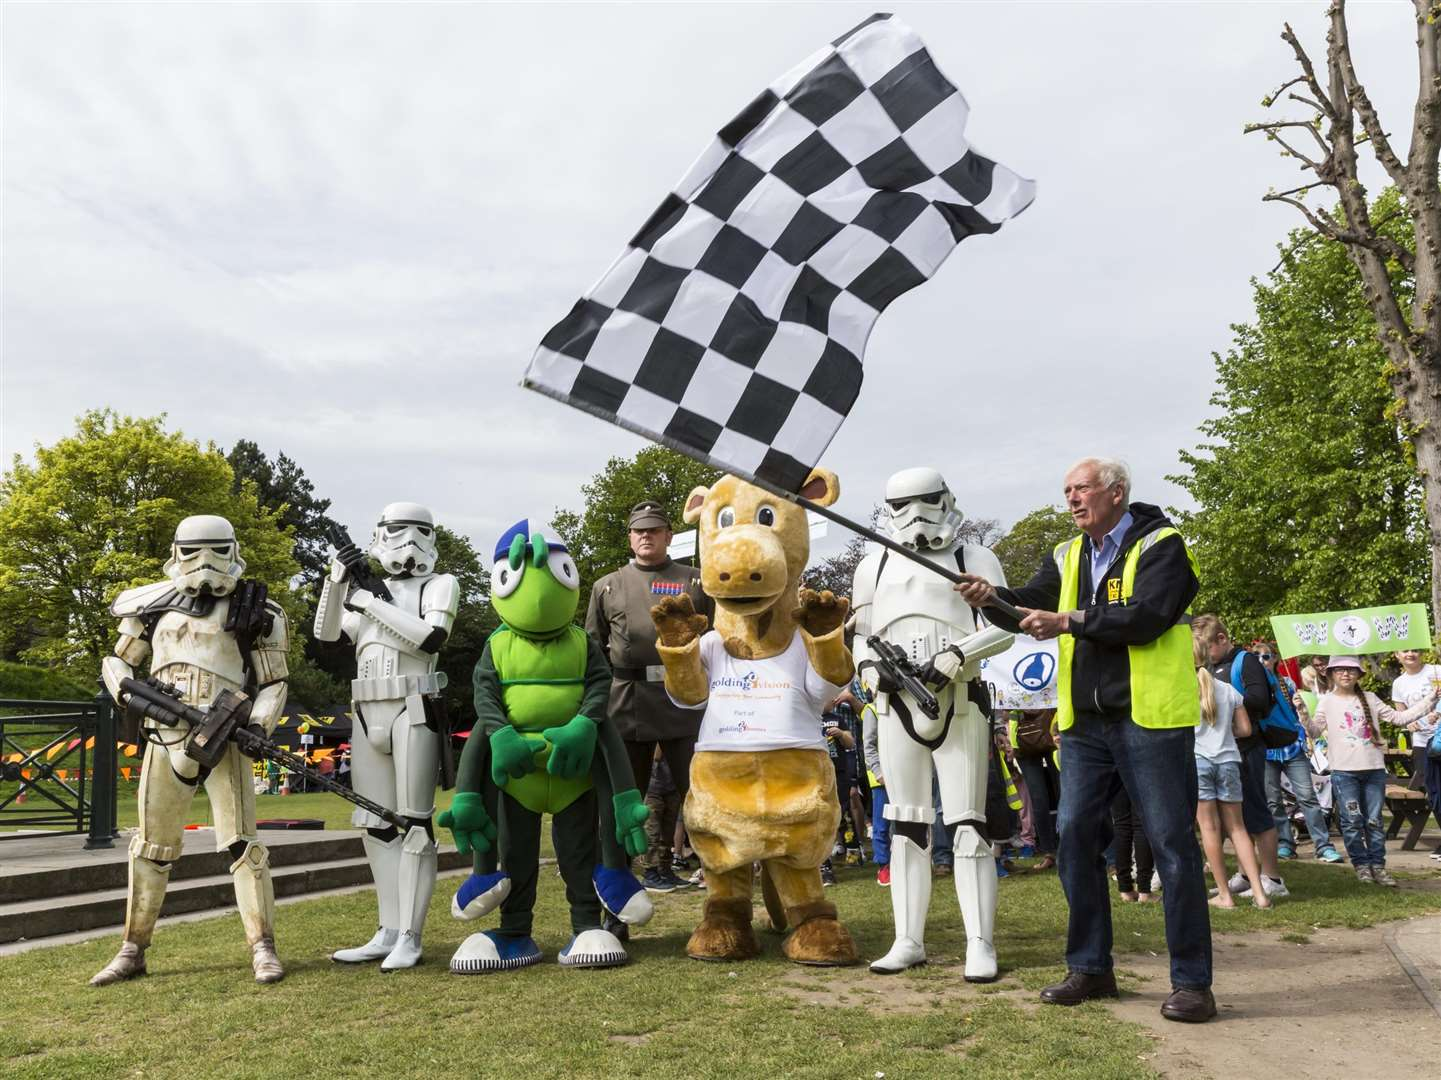 Martin Vye of the KM Charity Team waved the chequered flag while UK Garrison Stormtroopers, Buster Bug, and Gerald Giraffe headed up the record-breaking walking bus. (1969084)